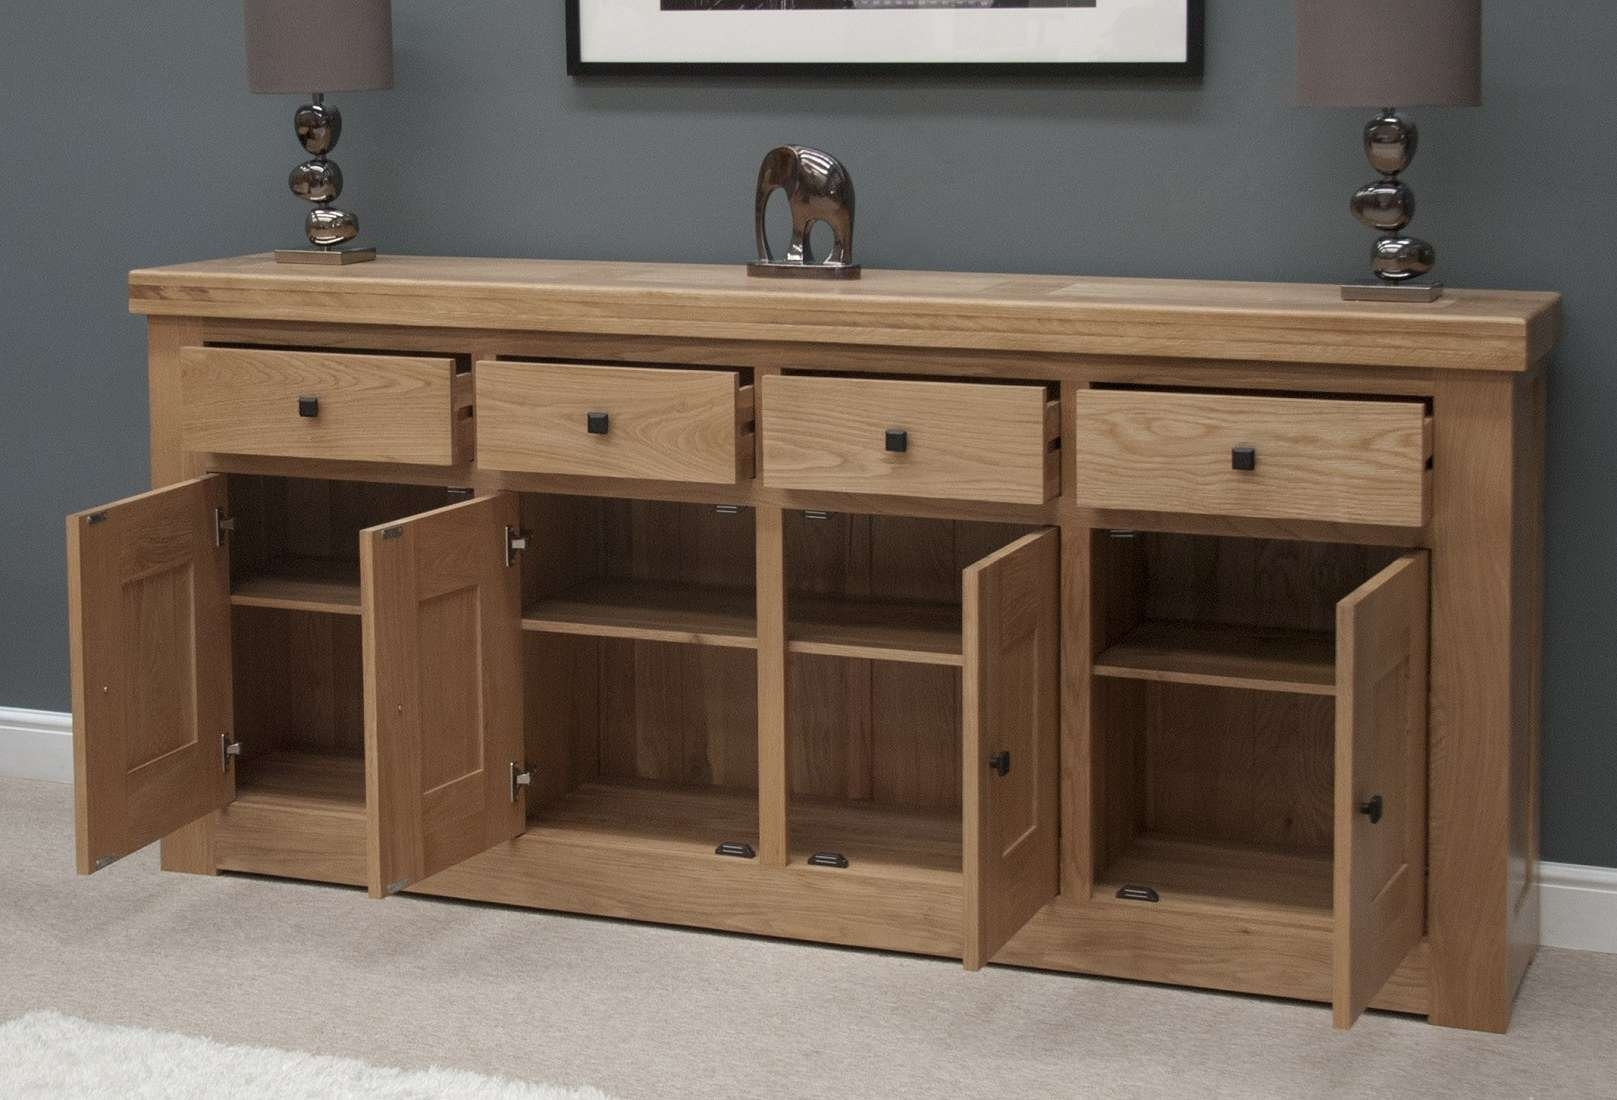 French Bordeaux Oak Extra Large 4 Door Sideboard | Oak Furniture Uk In French Sideboards (View 4 of 20)